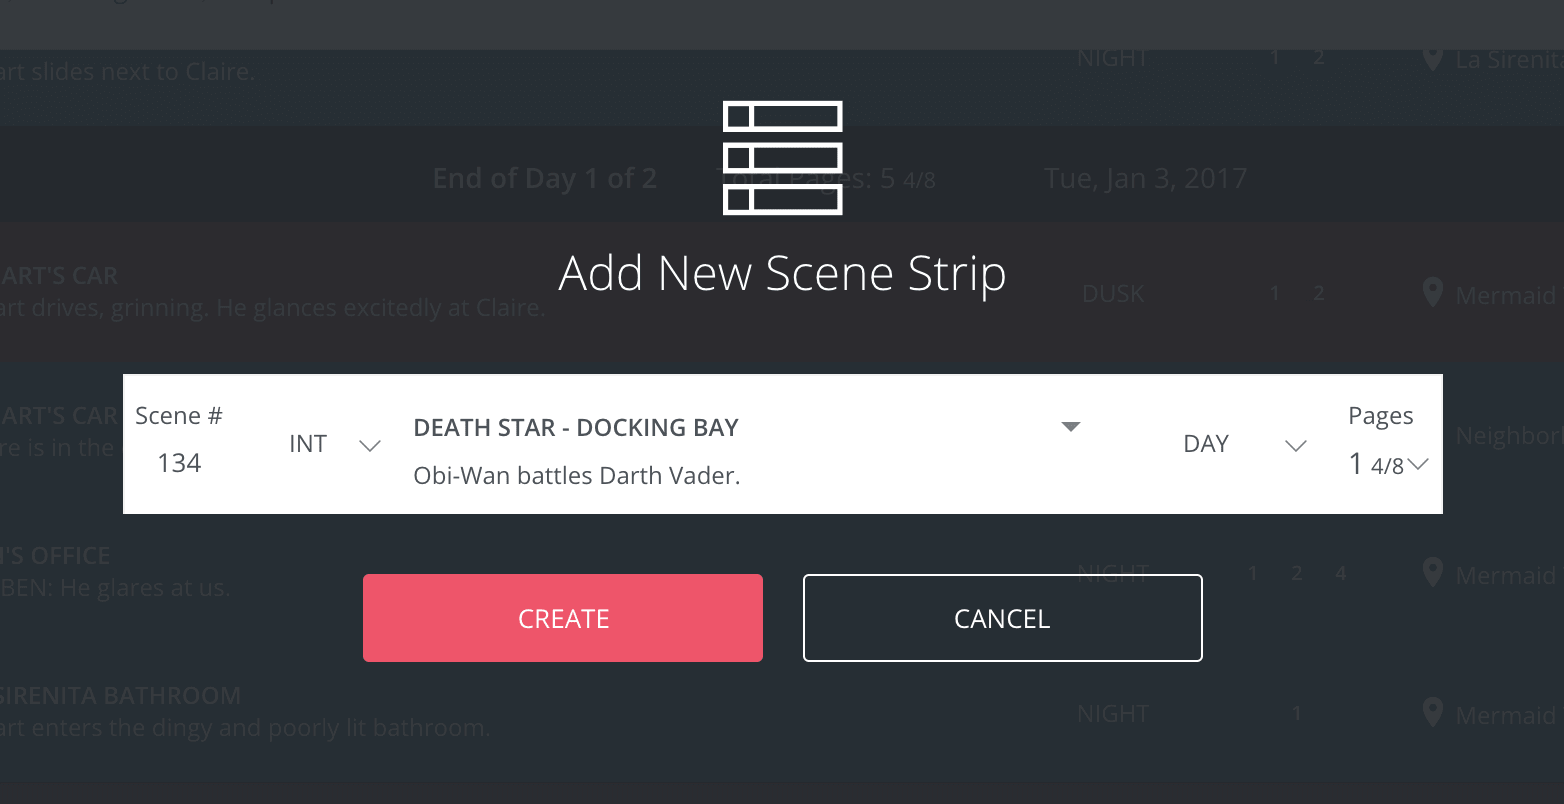 Shooting Schedule Template and Film Scheduling Software - Scene Strip Details - StudioBinder Film Production Management Software